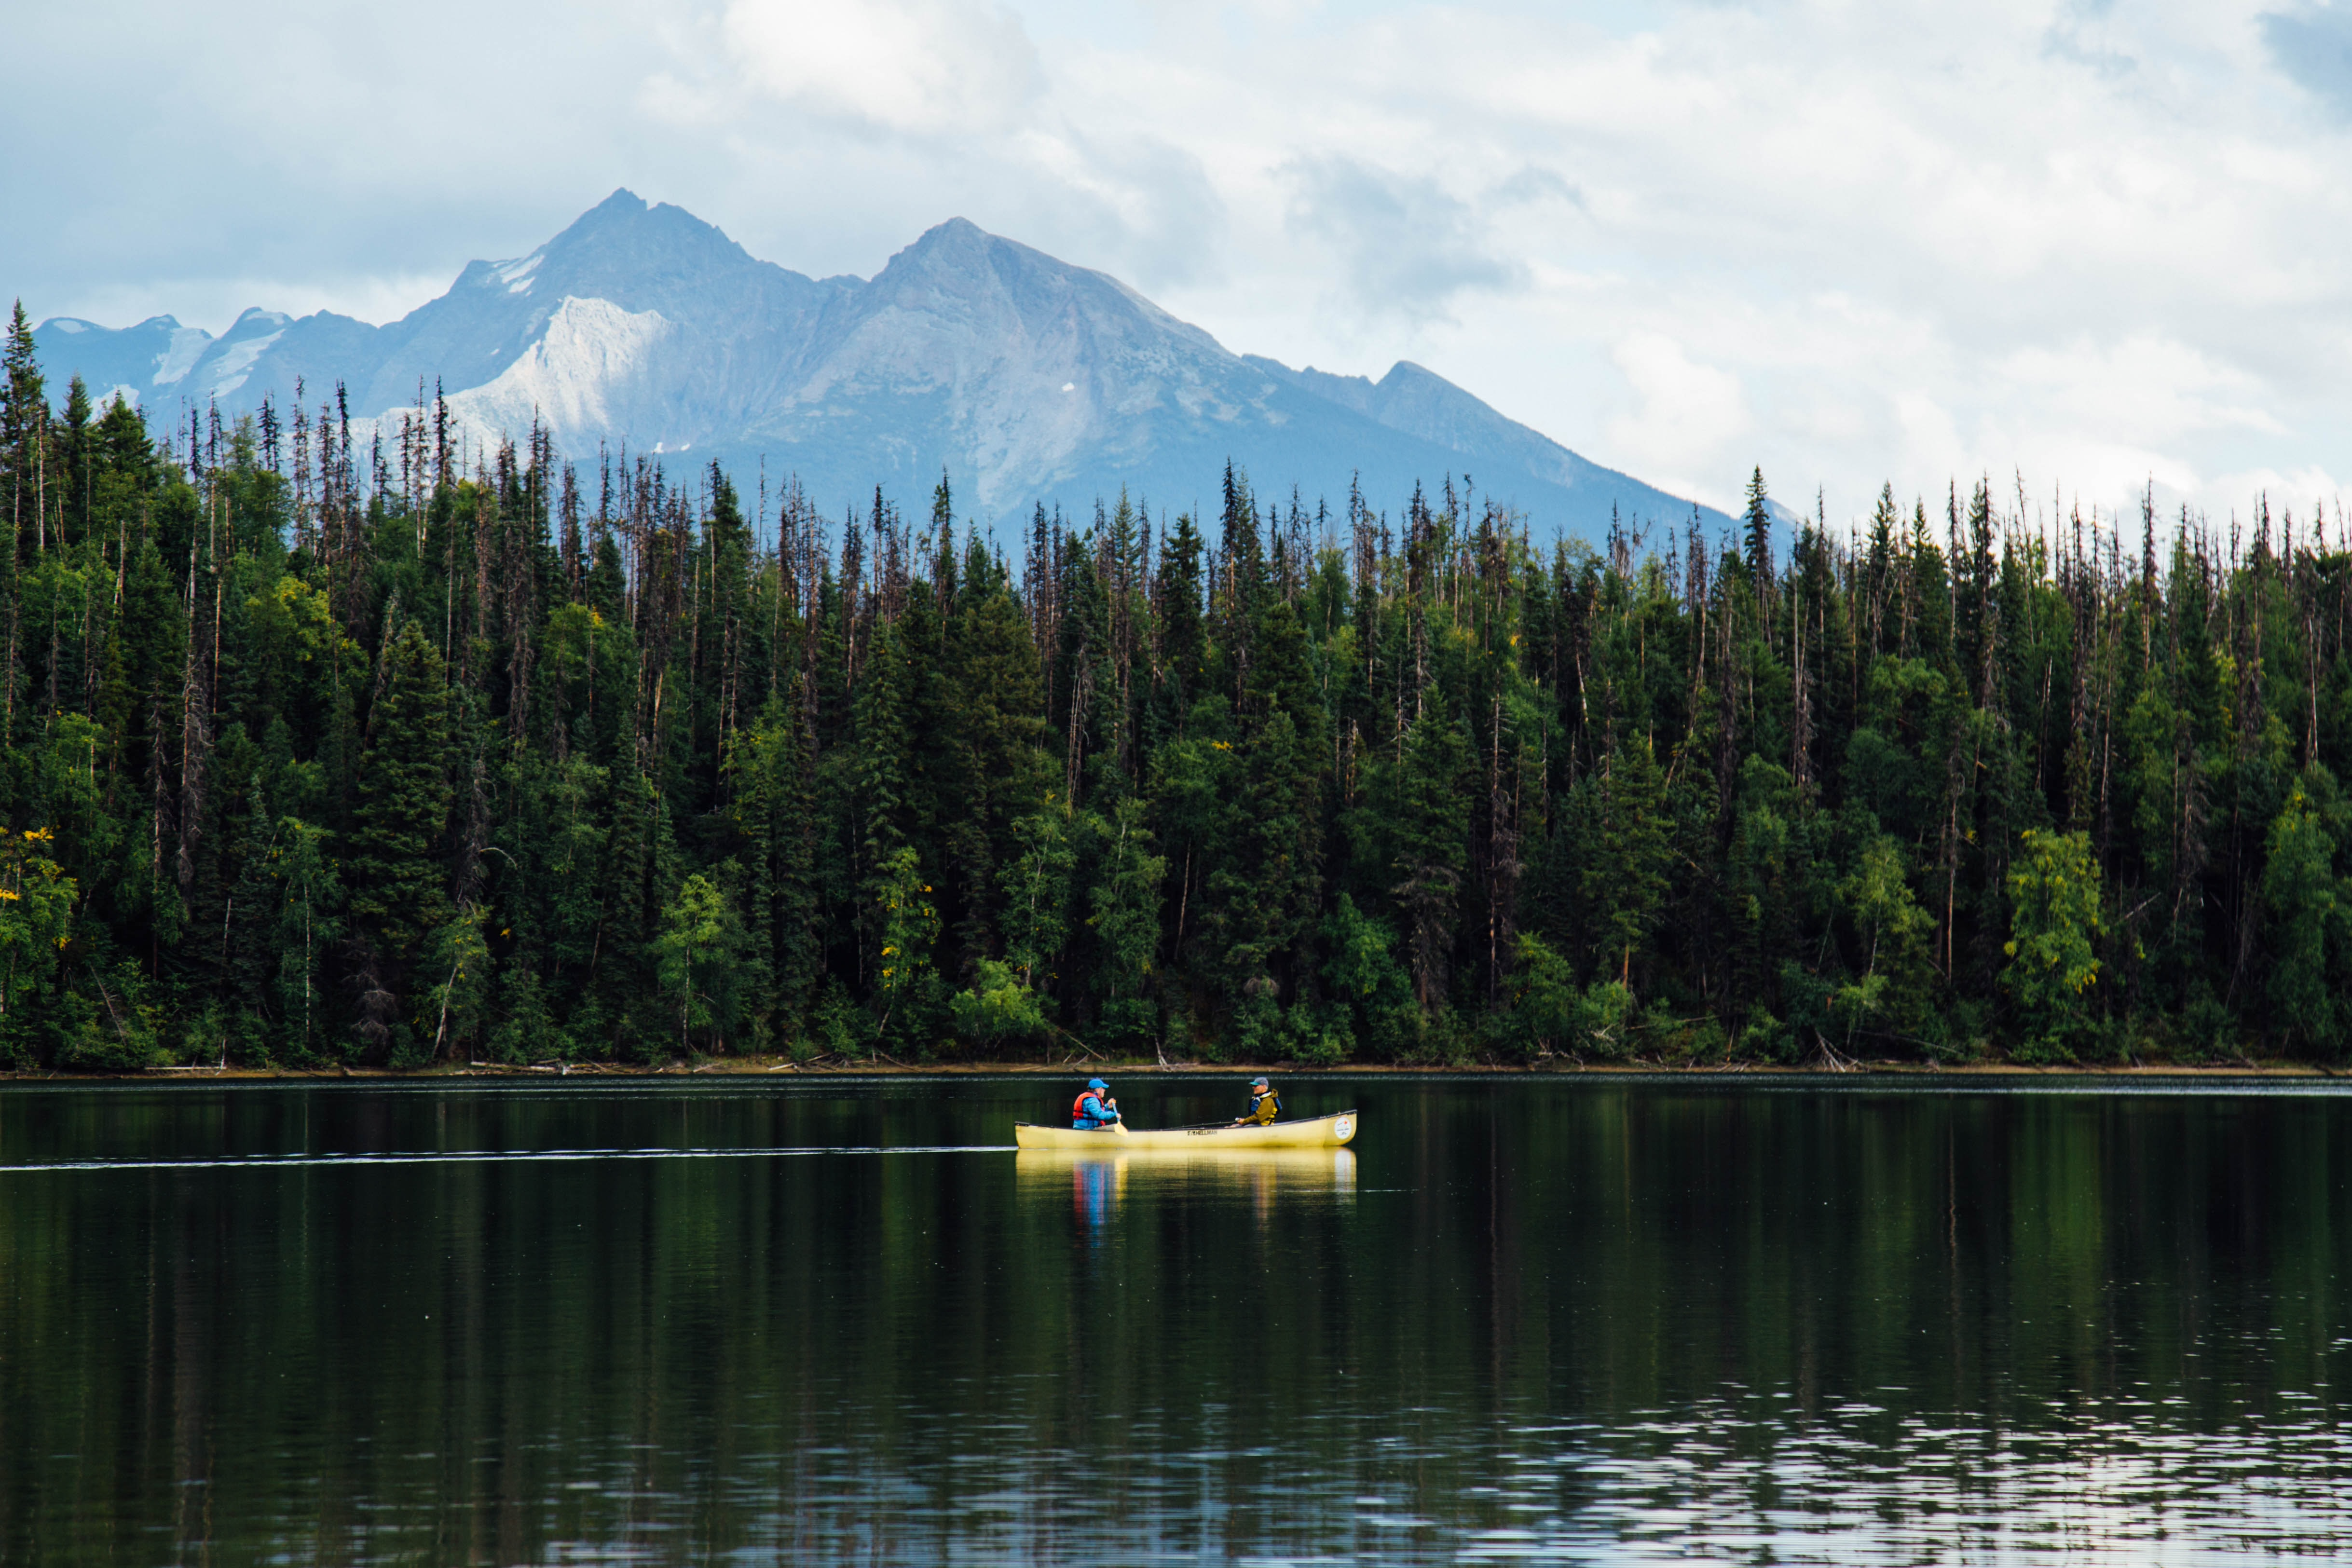 two people in yellow boat sailing near pine trees during daytime